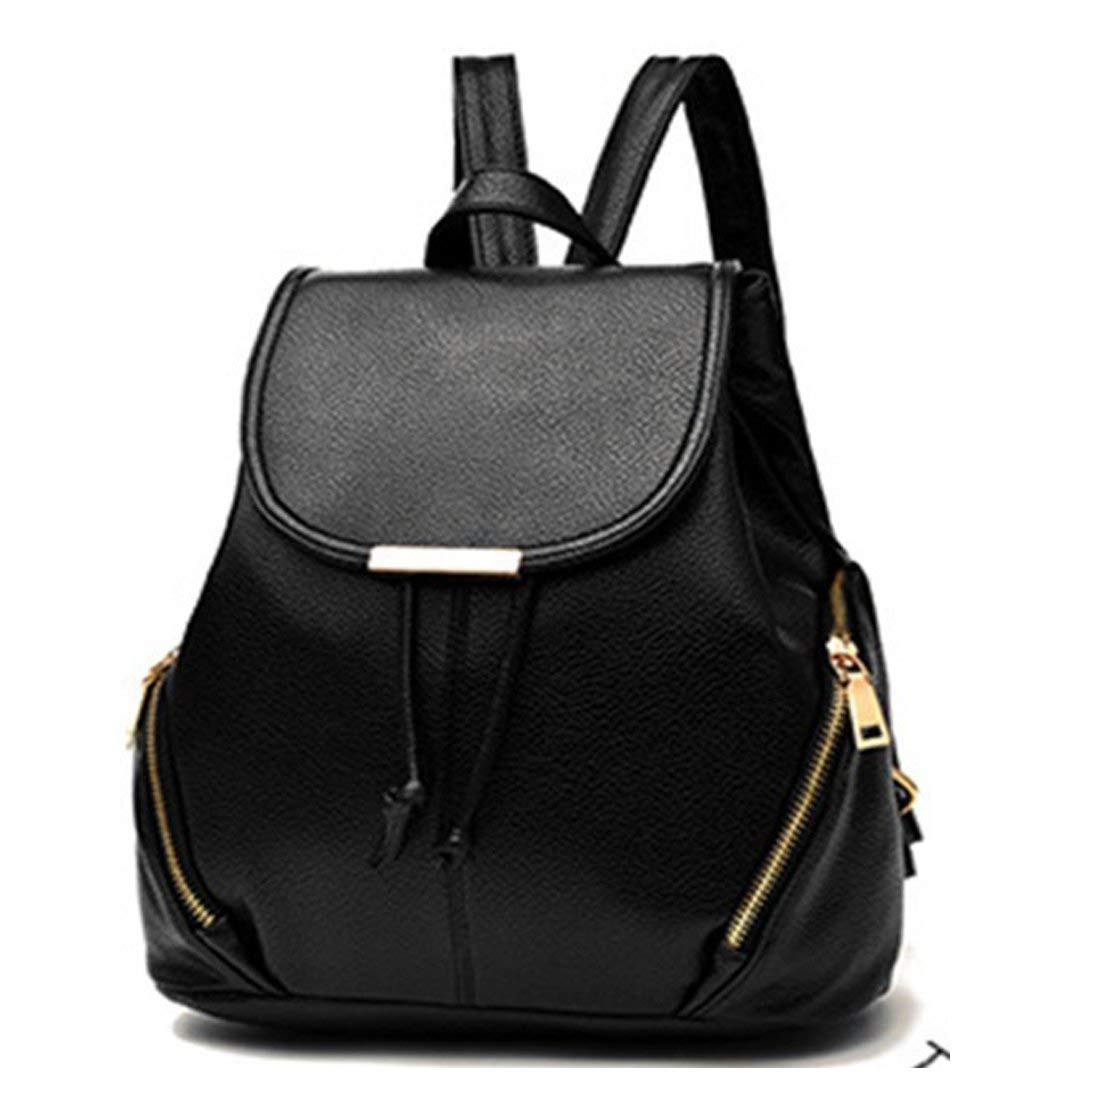 558835e23ed2 Redlicchi PU Leather Backpacks Students School bags for Girls Teenagers  Travel Rucksack Black Color Small Shoulder Bag  Amazon.in  Bags